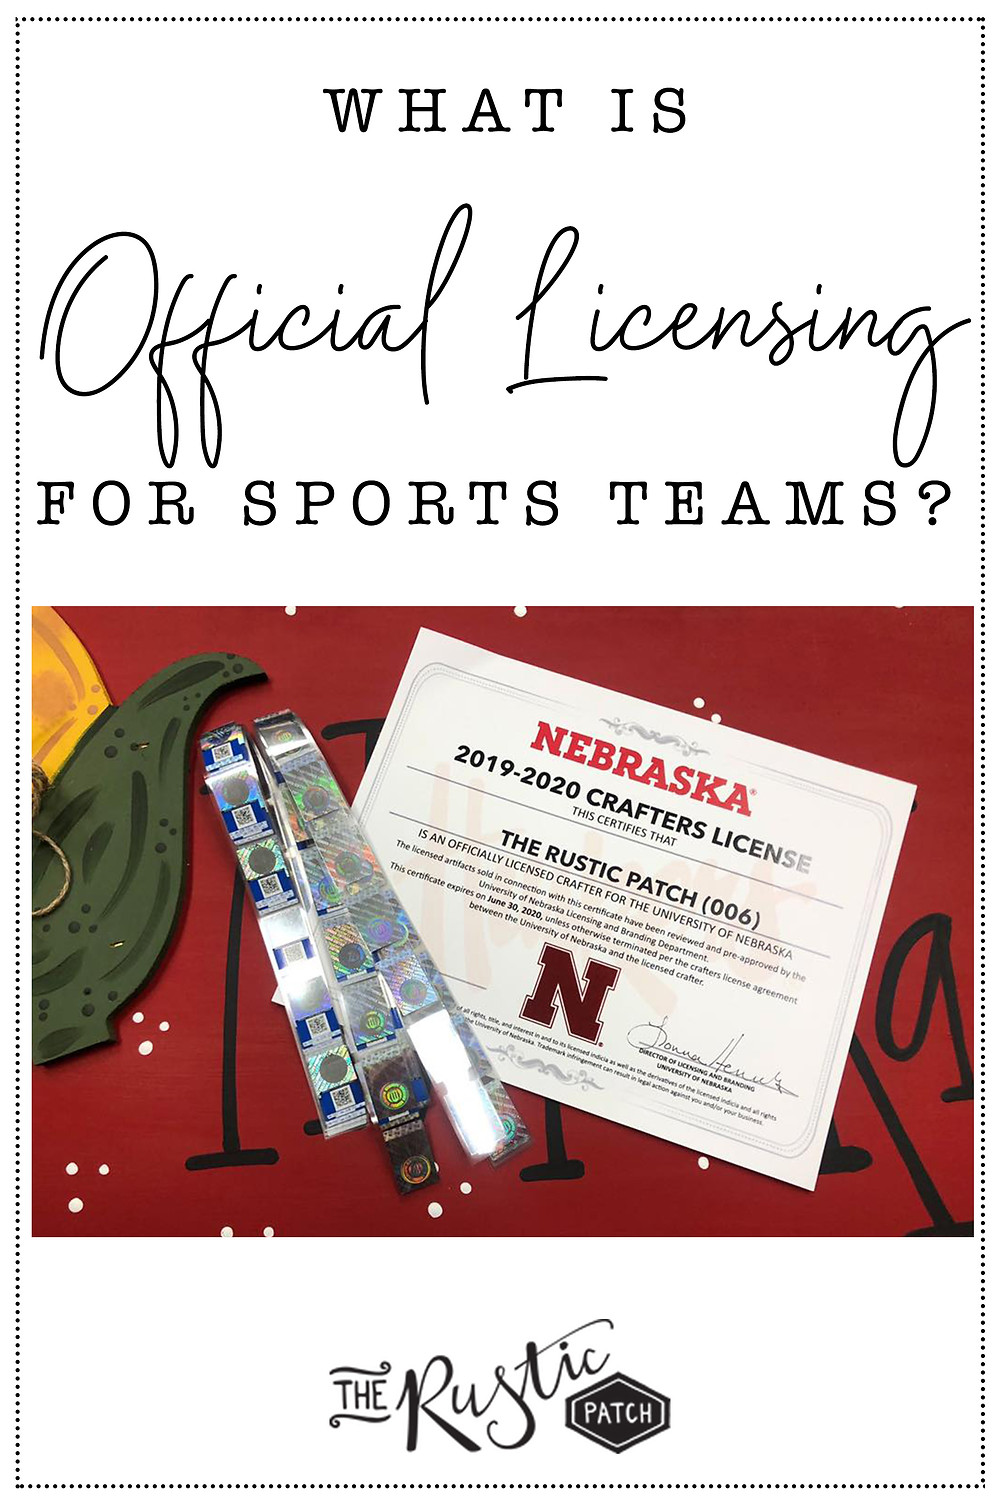 The Rustic Patch Is Officially Licensed to Sell A Handful of Nebraska Huskers Products